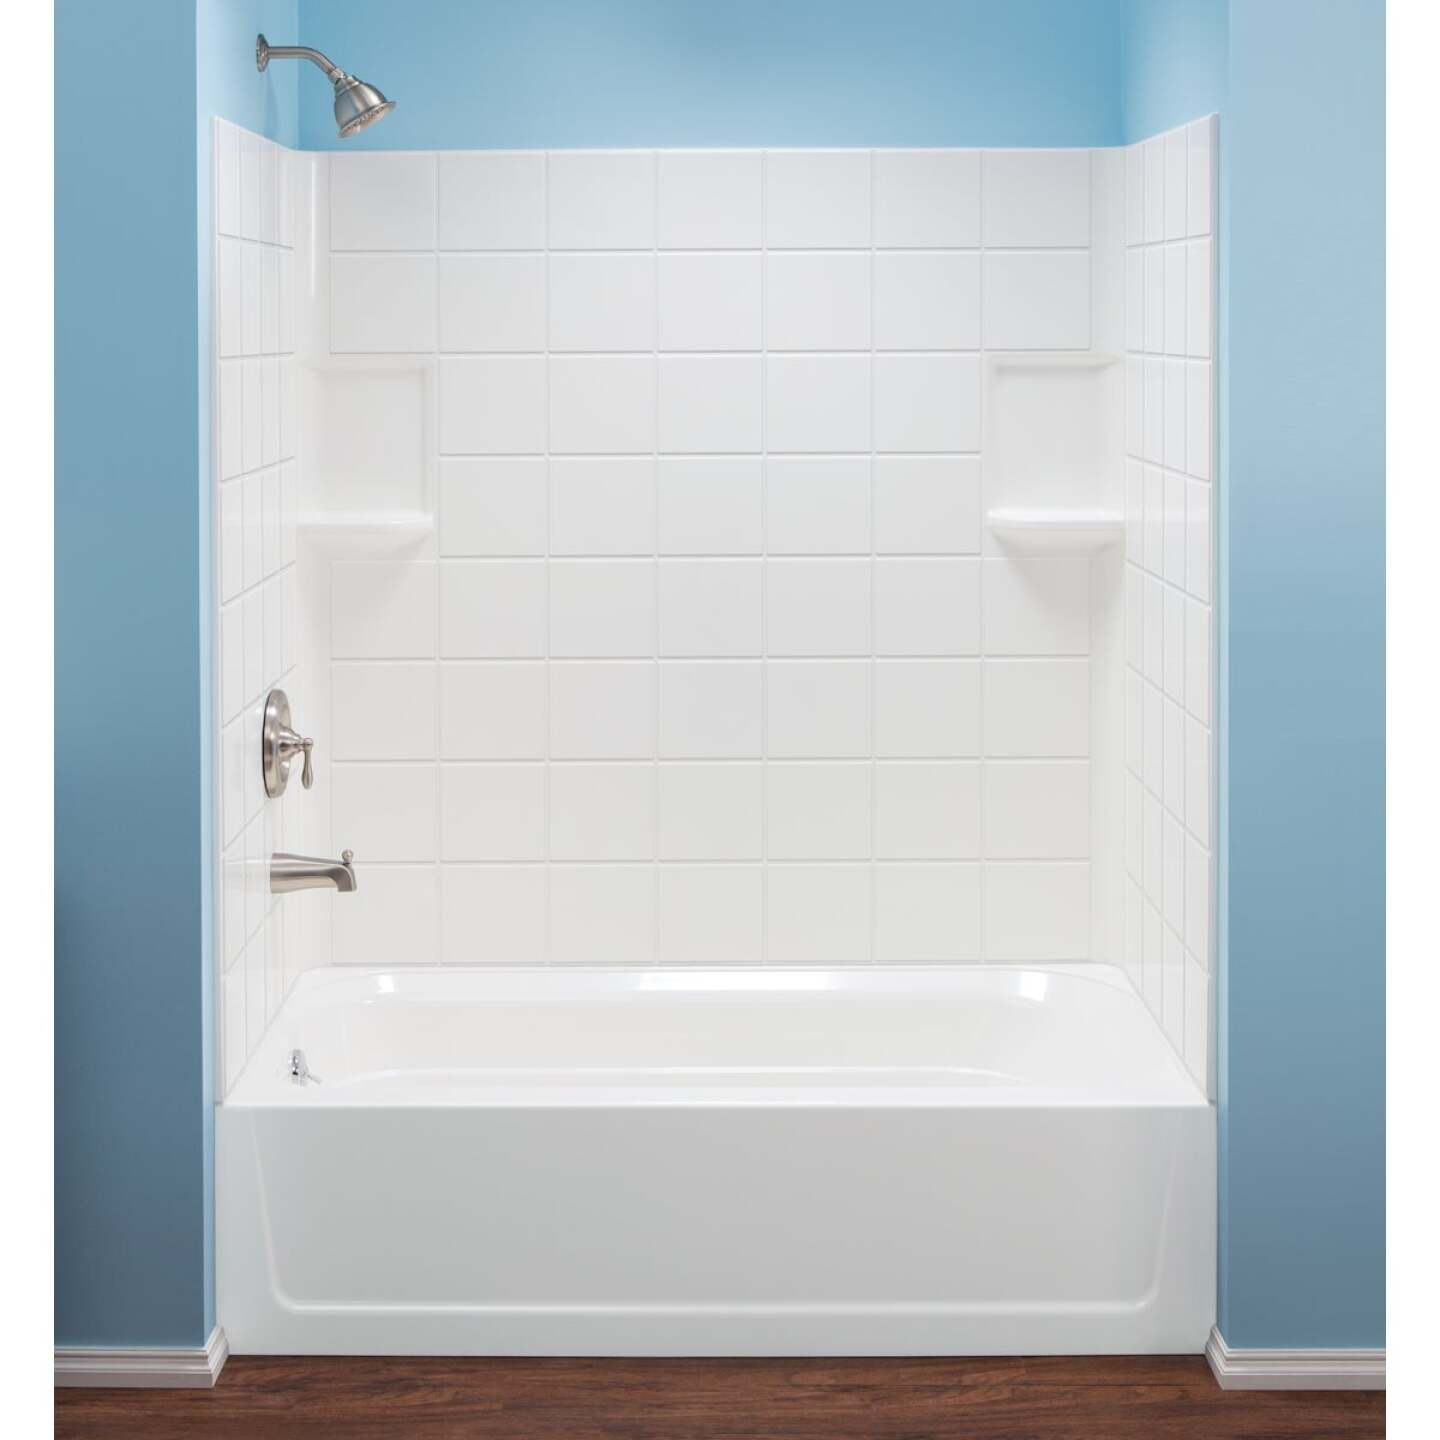 Mustee Topaz 3-Piece 60 In. L x 30 In. D (Bathtub) Tub Wall Kit in White (Tile Pattern) Image 1